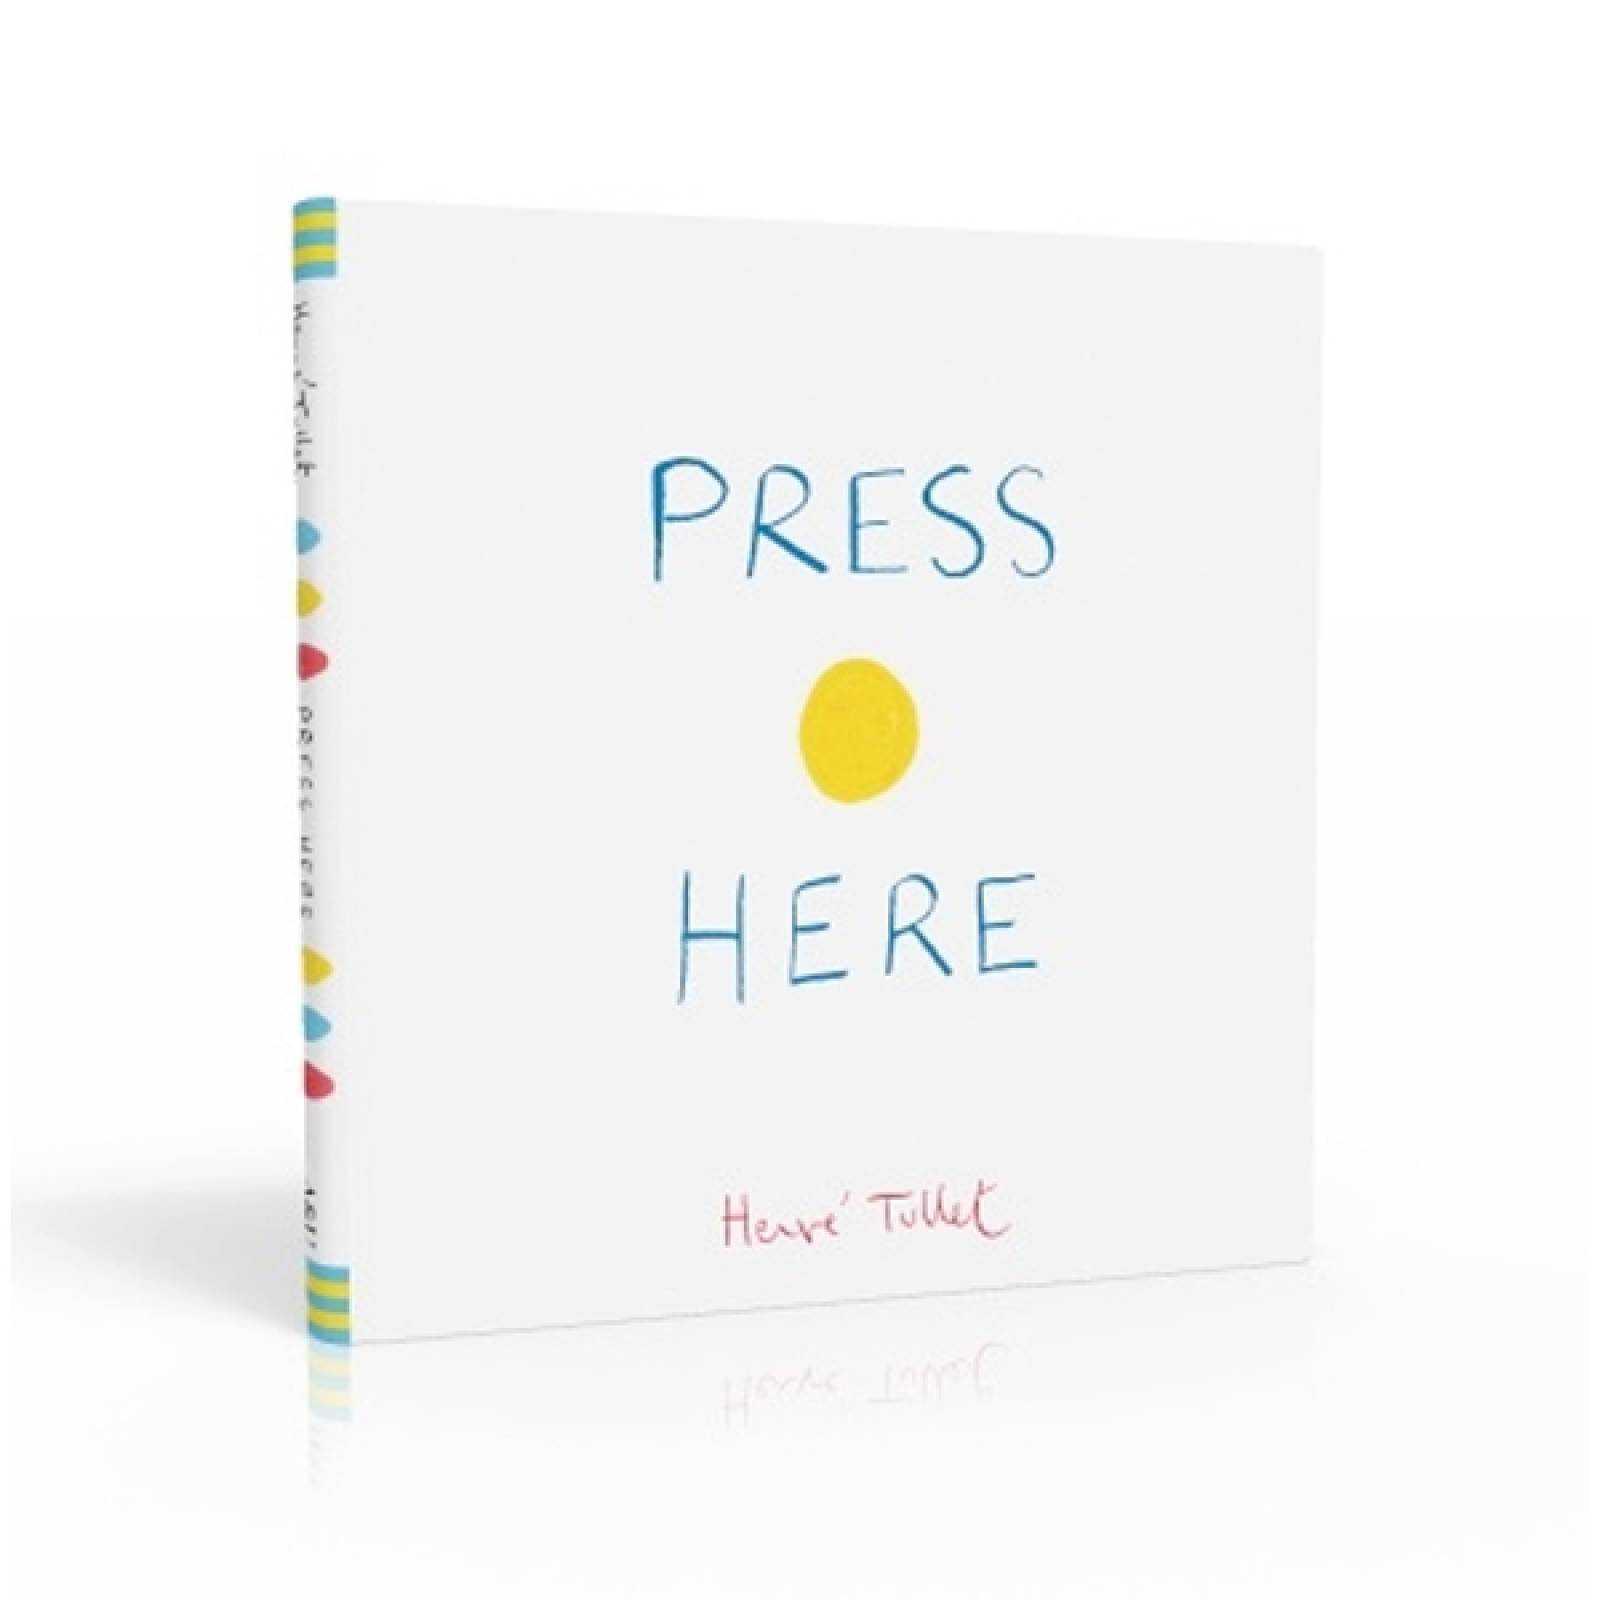 Press Here Book Hardback BY Herve Tullet